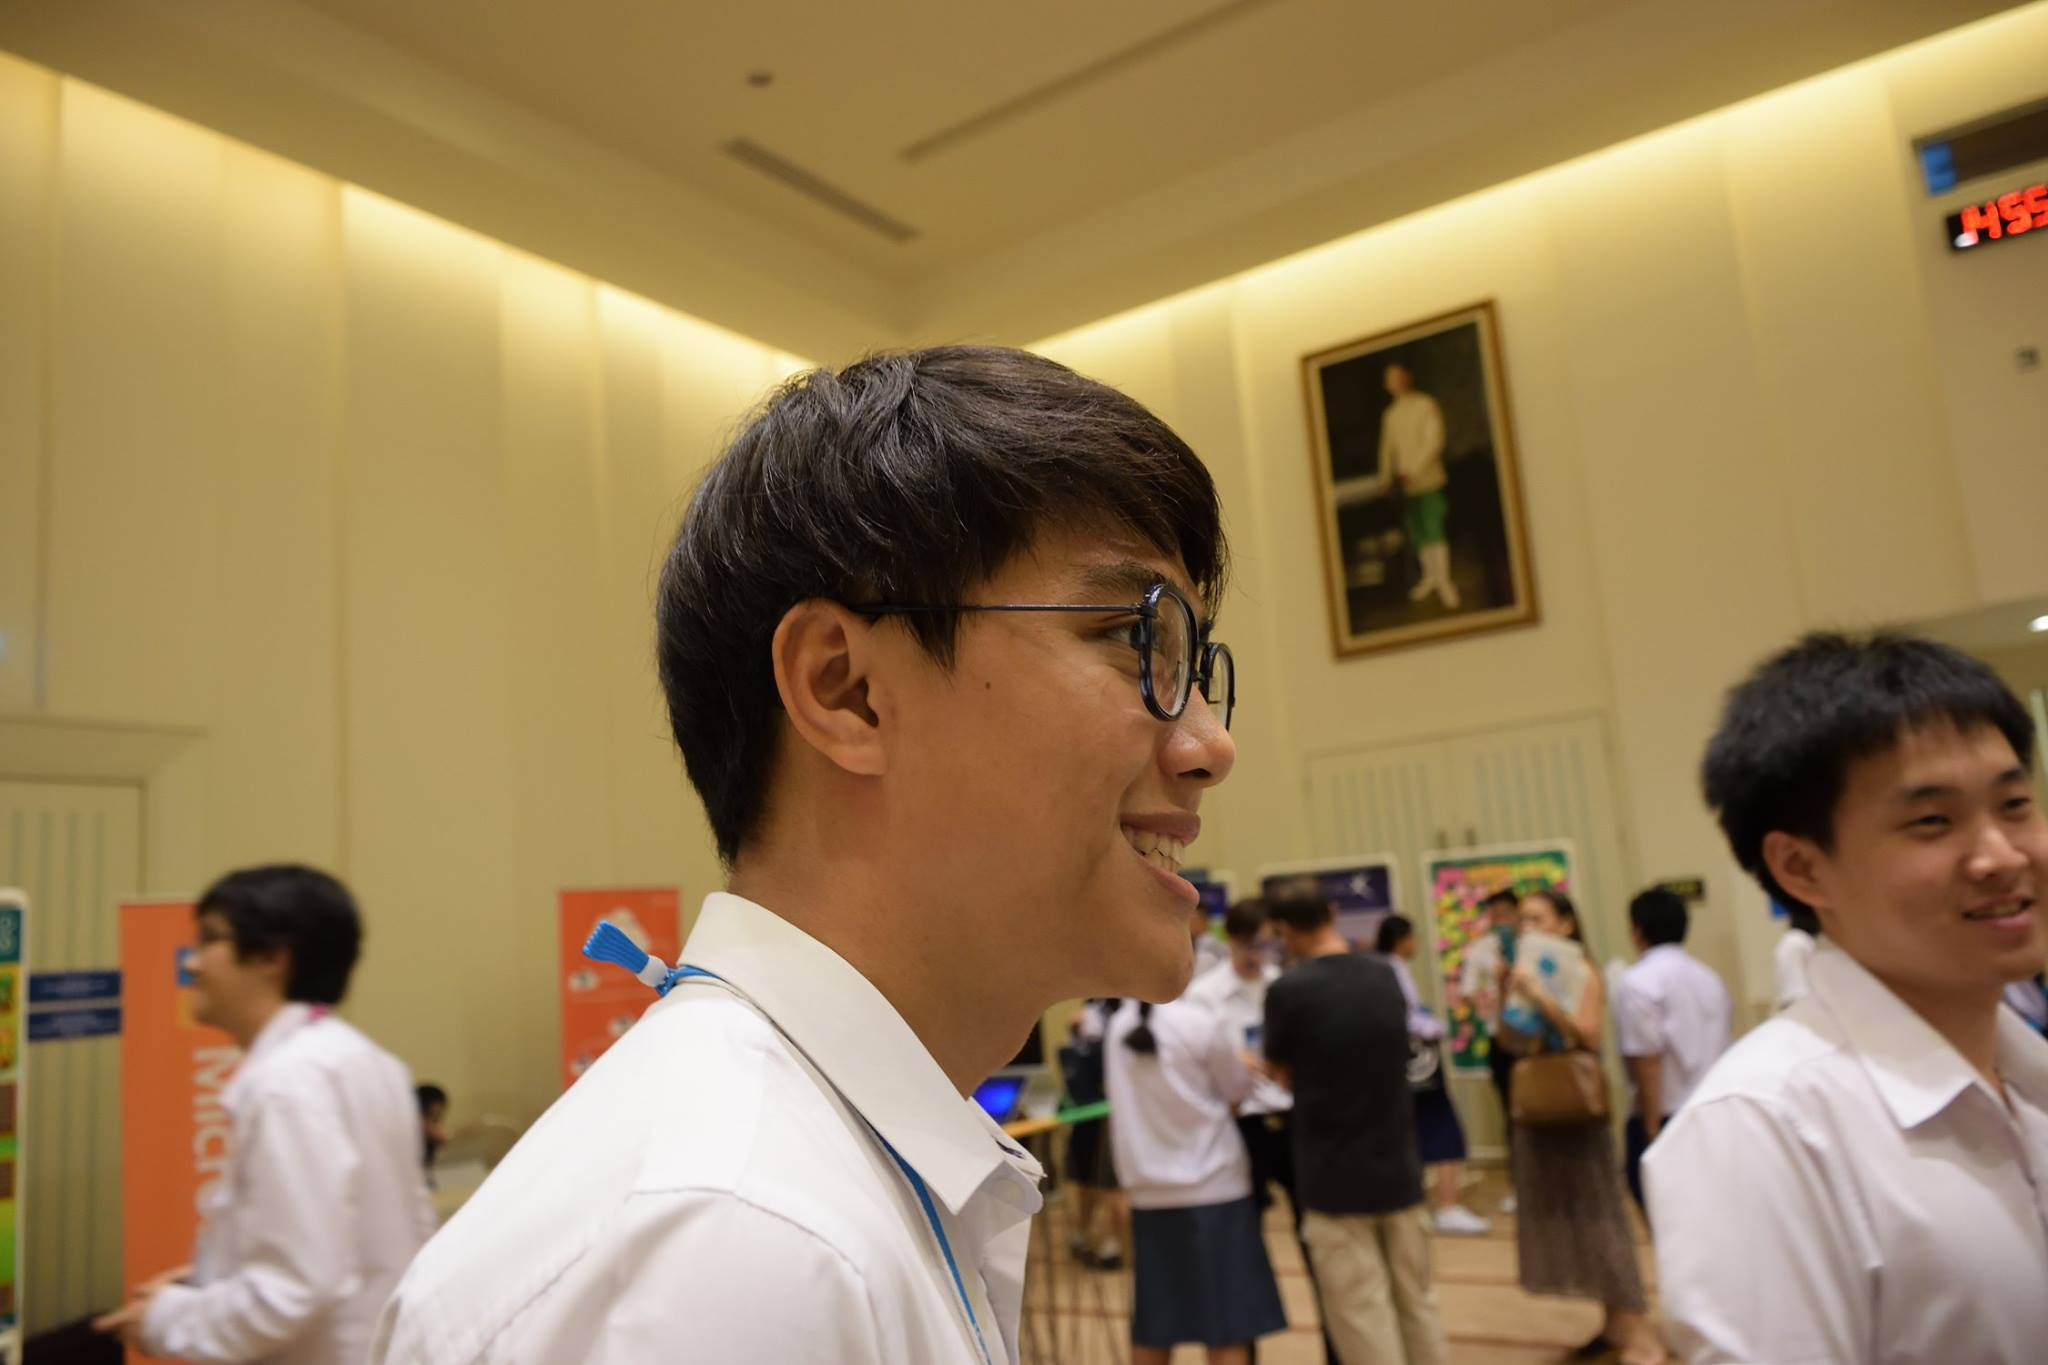 Me @ muict open house 2017